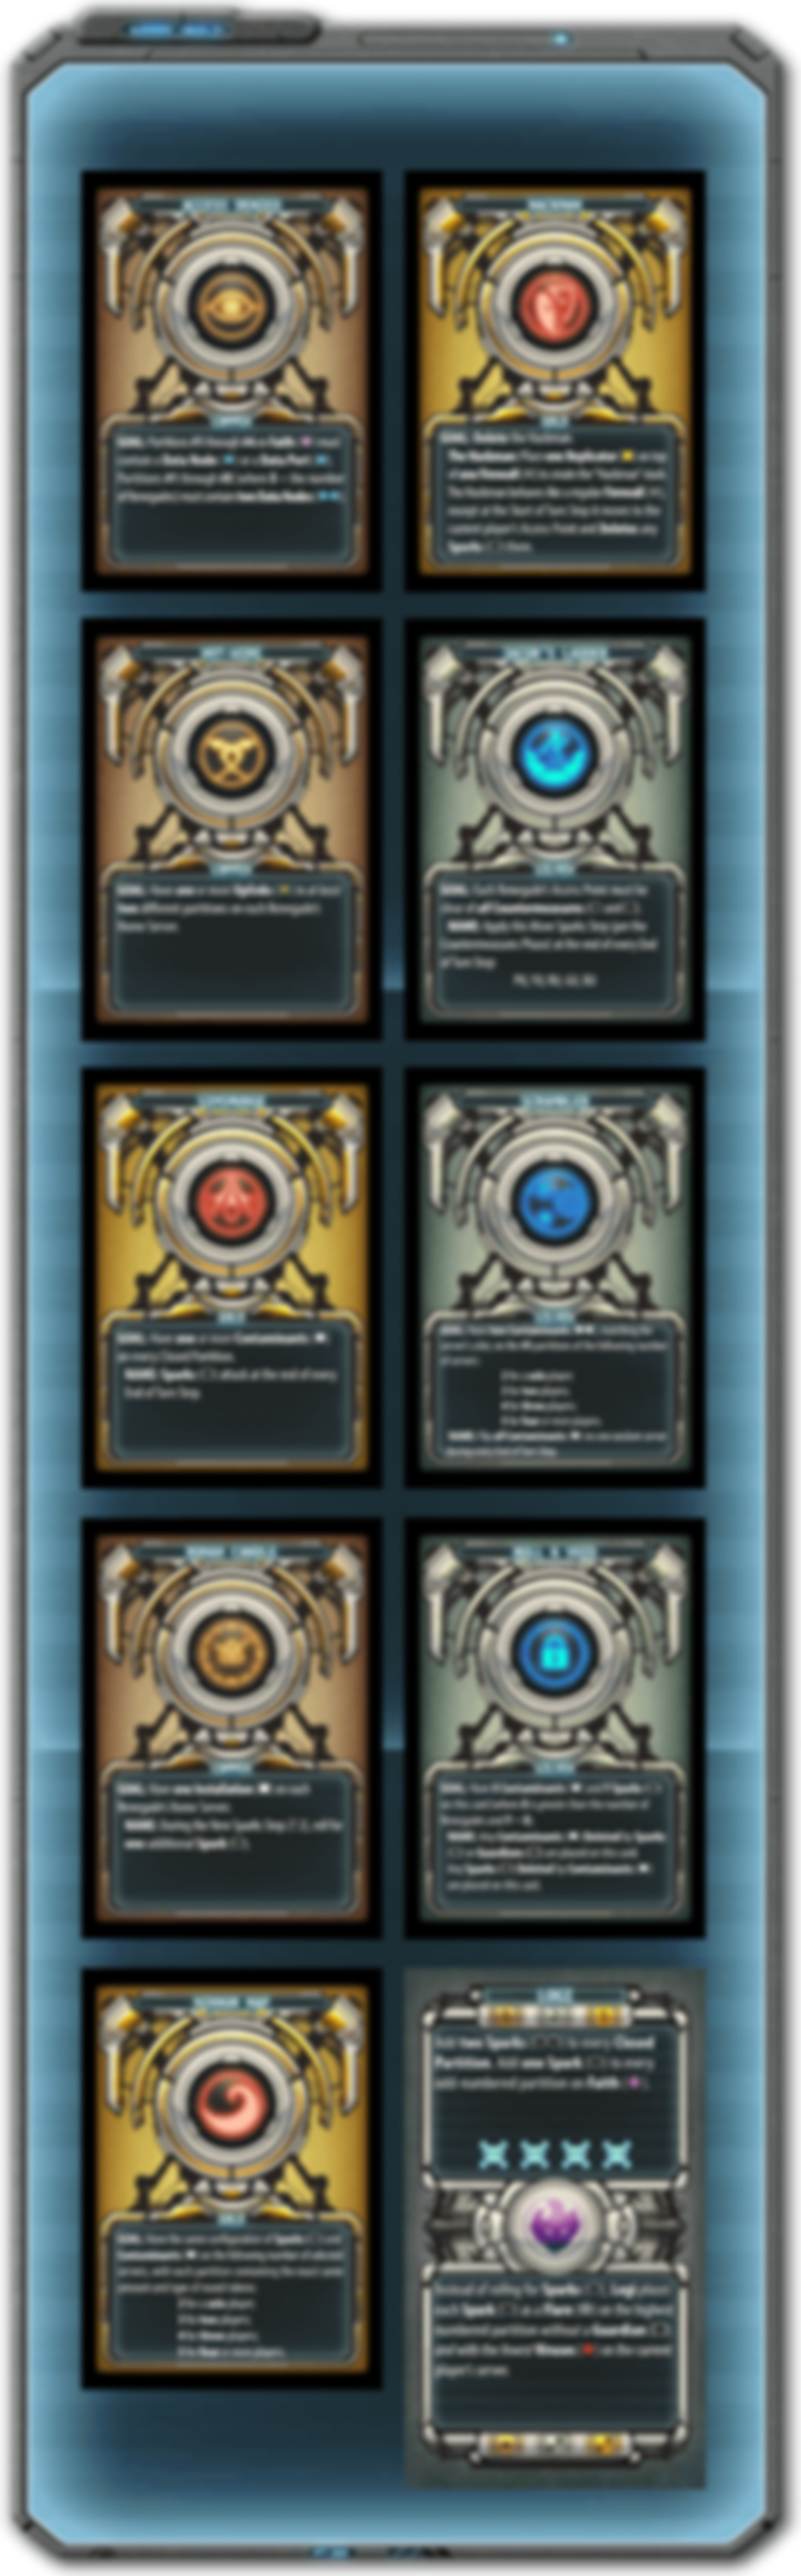 Renegade: Booster Pack 2 - Fire & Chaos cards